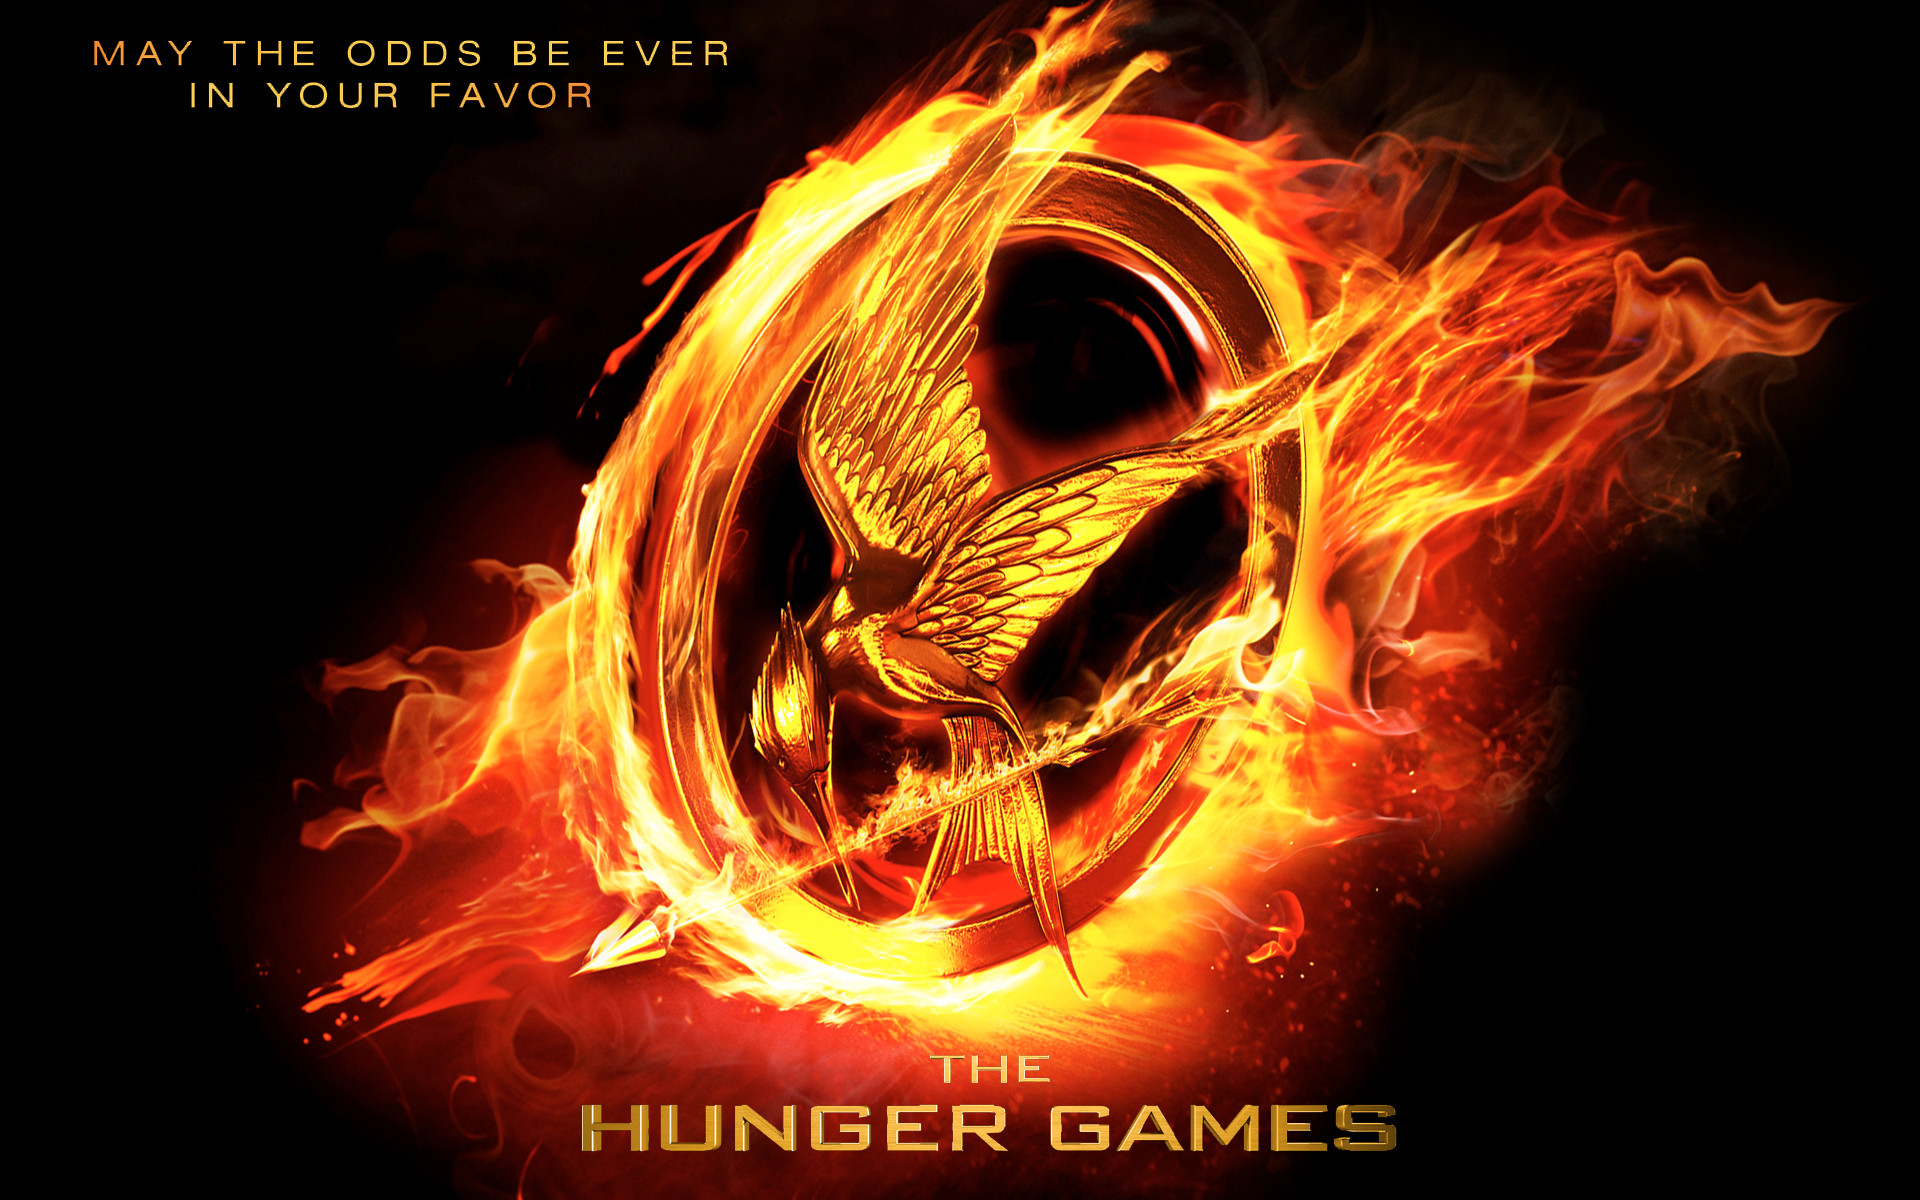 1920x1200 MOVIE REVIEW – 'THE HUNGER GAMES'